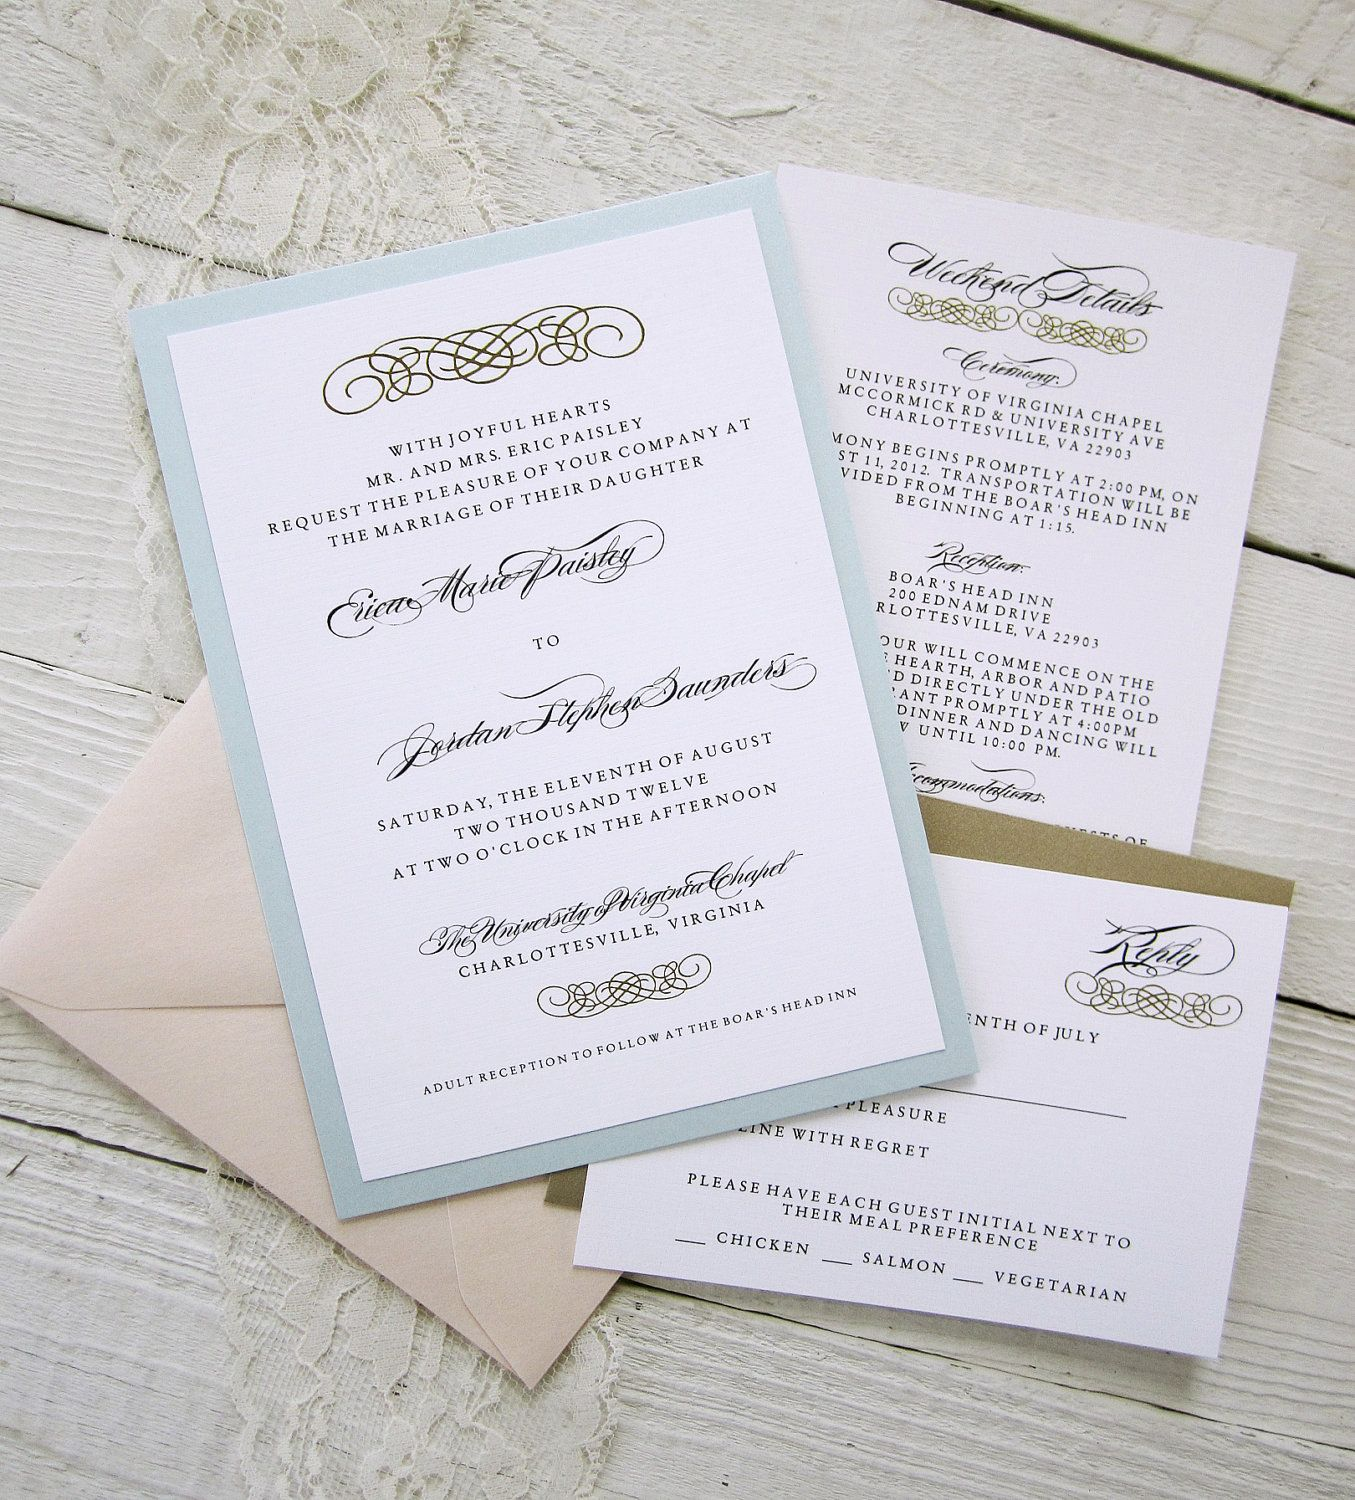 When Do You Send Invitations For Wedding: How Far In Advance Should You Send Out Wedding Invitations